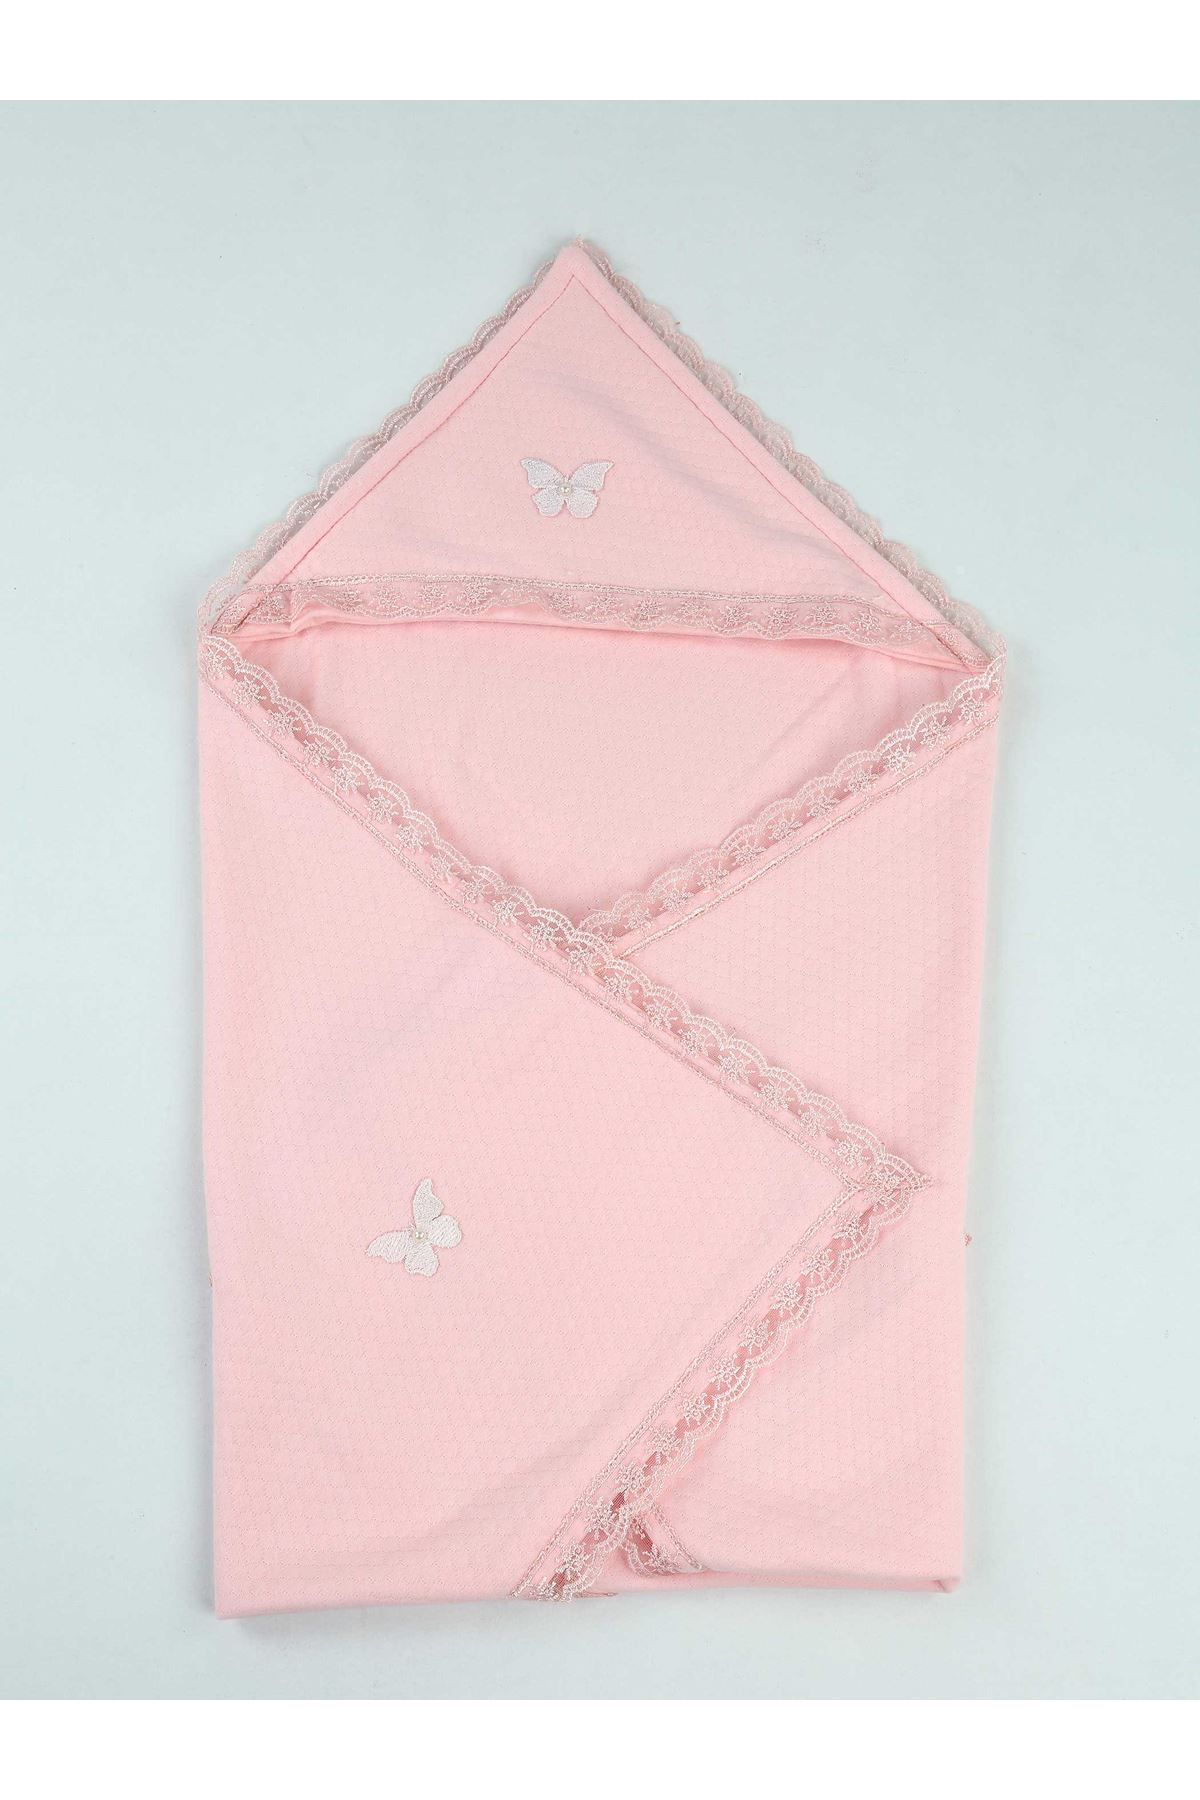 Pink 85 X85 Cm Girl Baby Swaddle Blanket